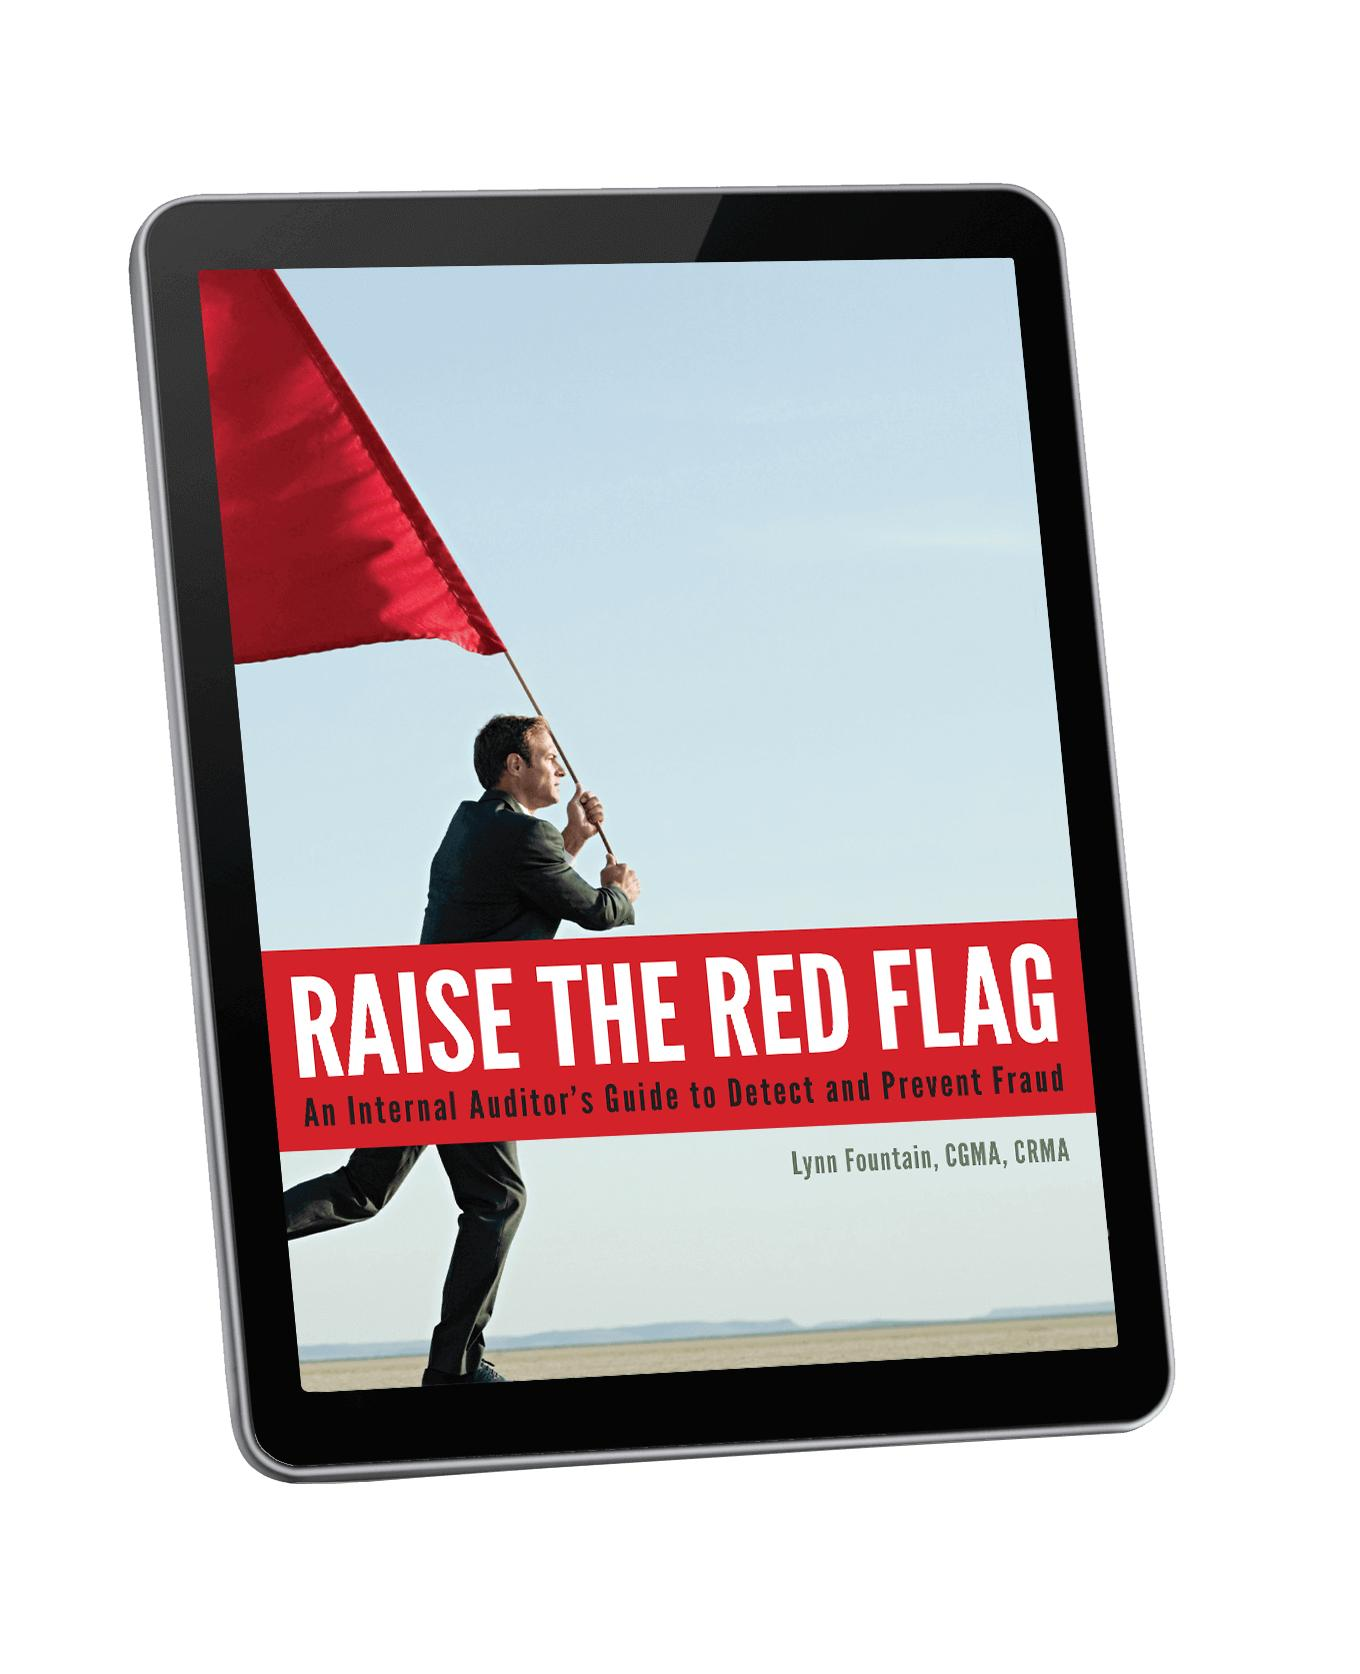 Raise the Red Flag: An Internal Auditor's Guide to Detect and